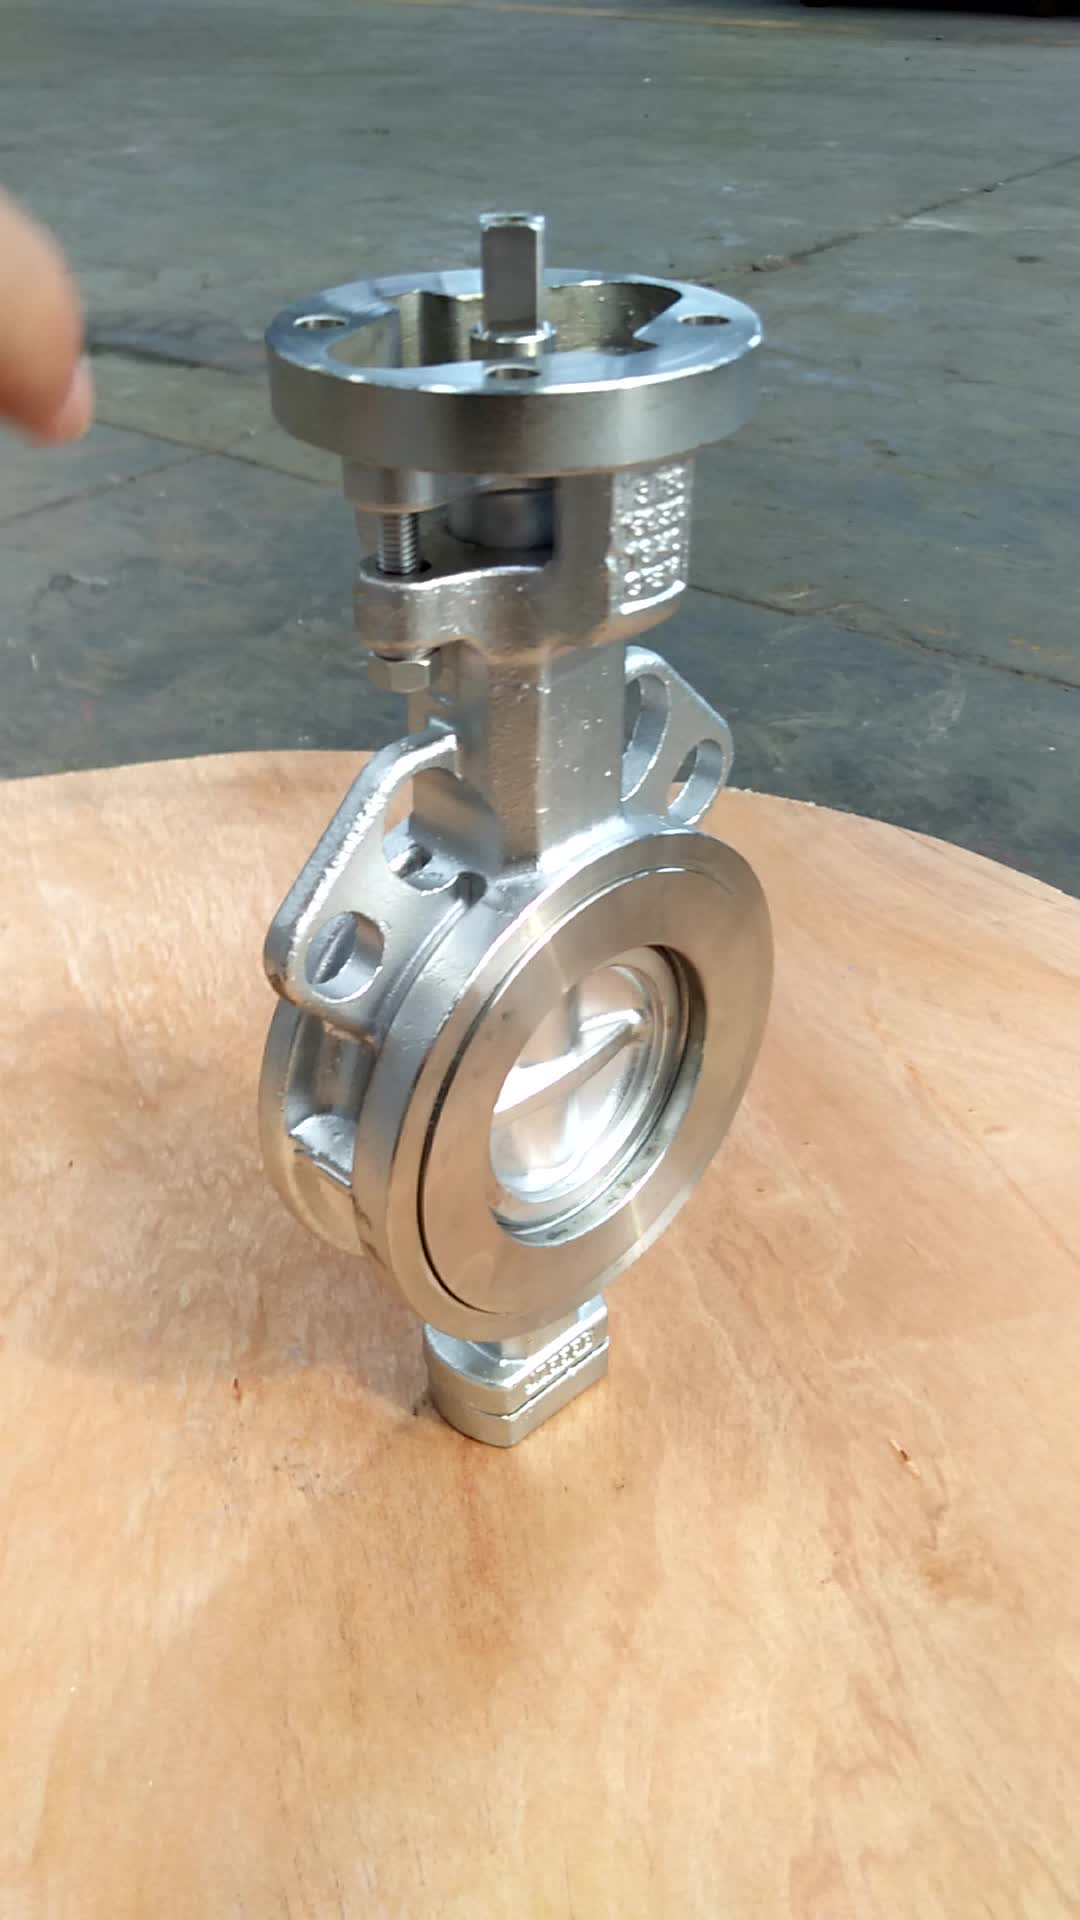 GGG40 Ductile Cast Iron Wafer Style Double Eksentrisitas EPDM Segel Butterfly Valve Dioperasikan Oleh Gearbox